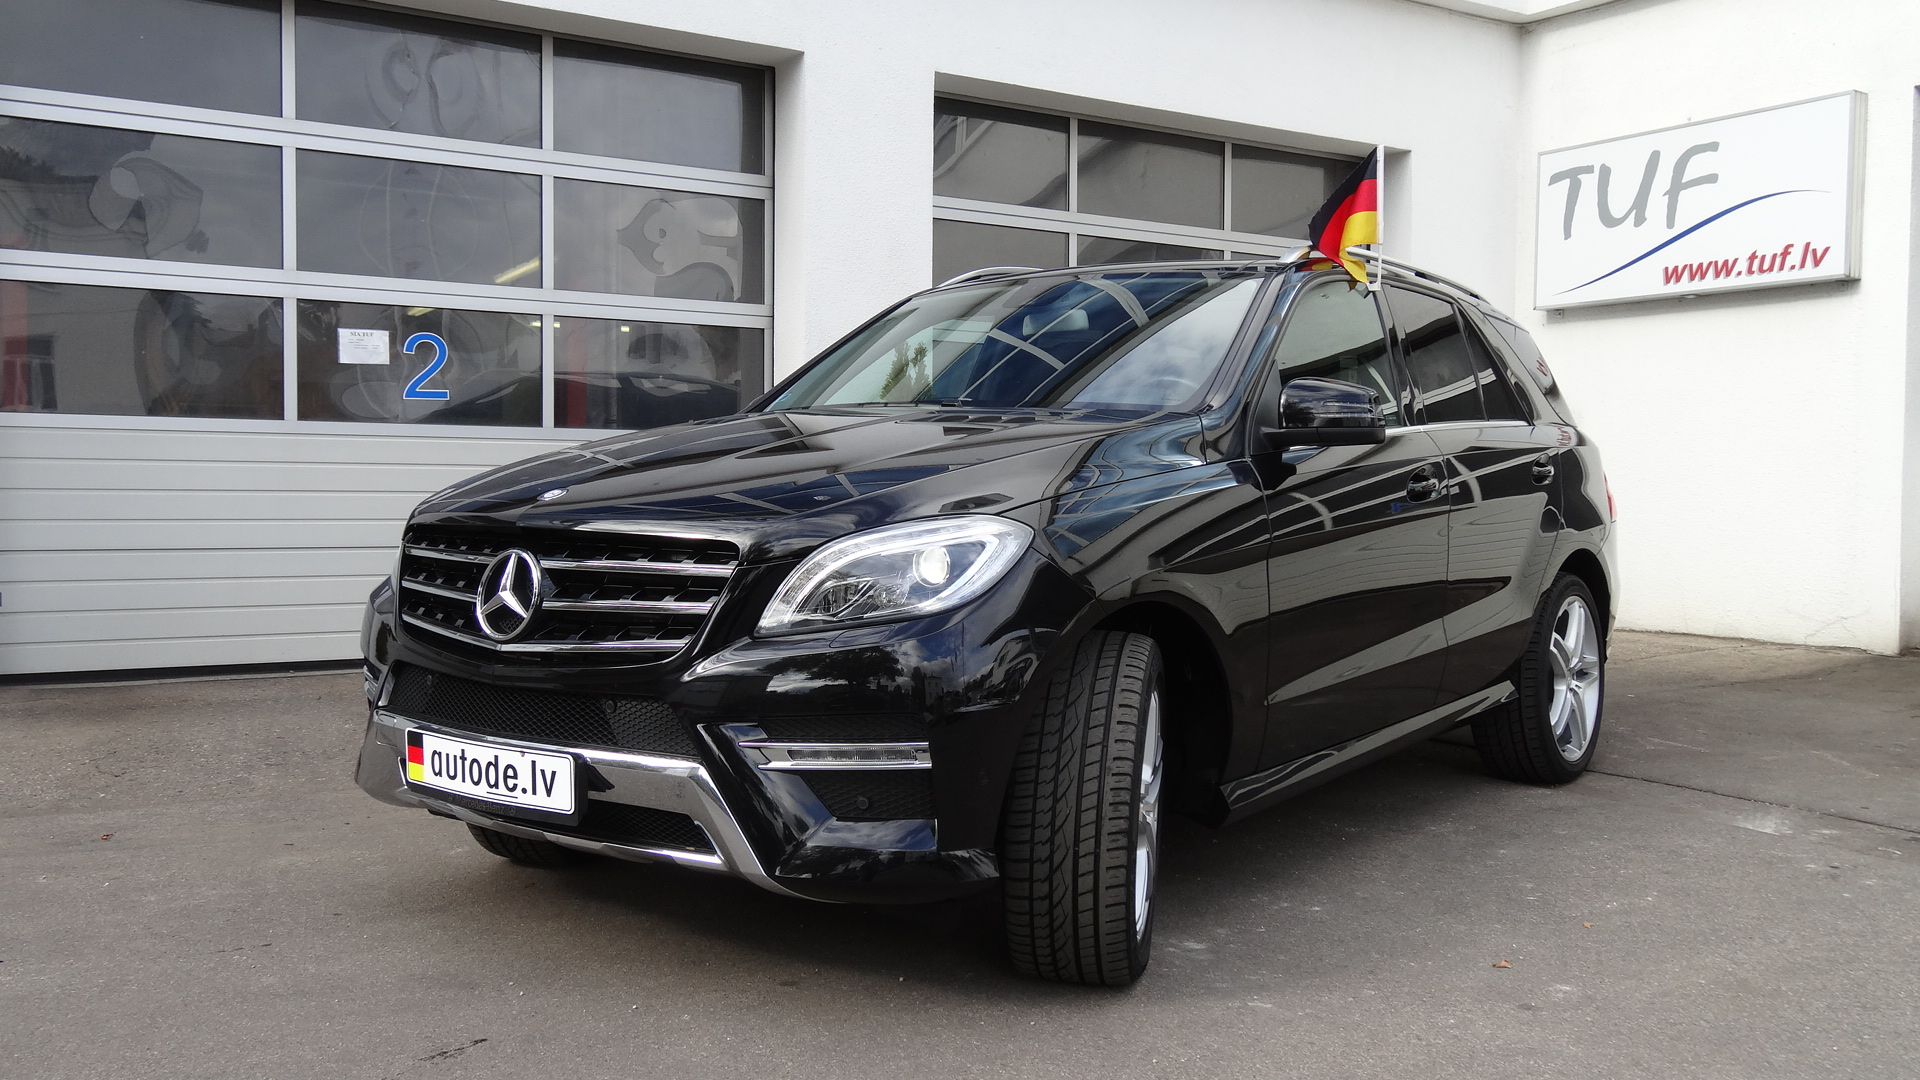 Mercedes benz ml 350 amg bluetec 4matic tuf lv for Ml mercedes benz